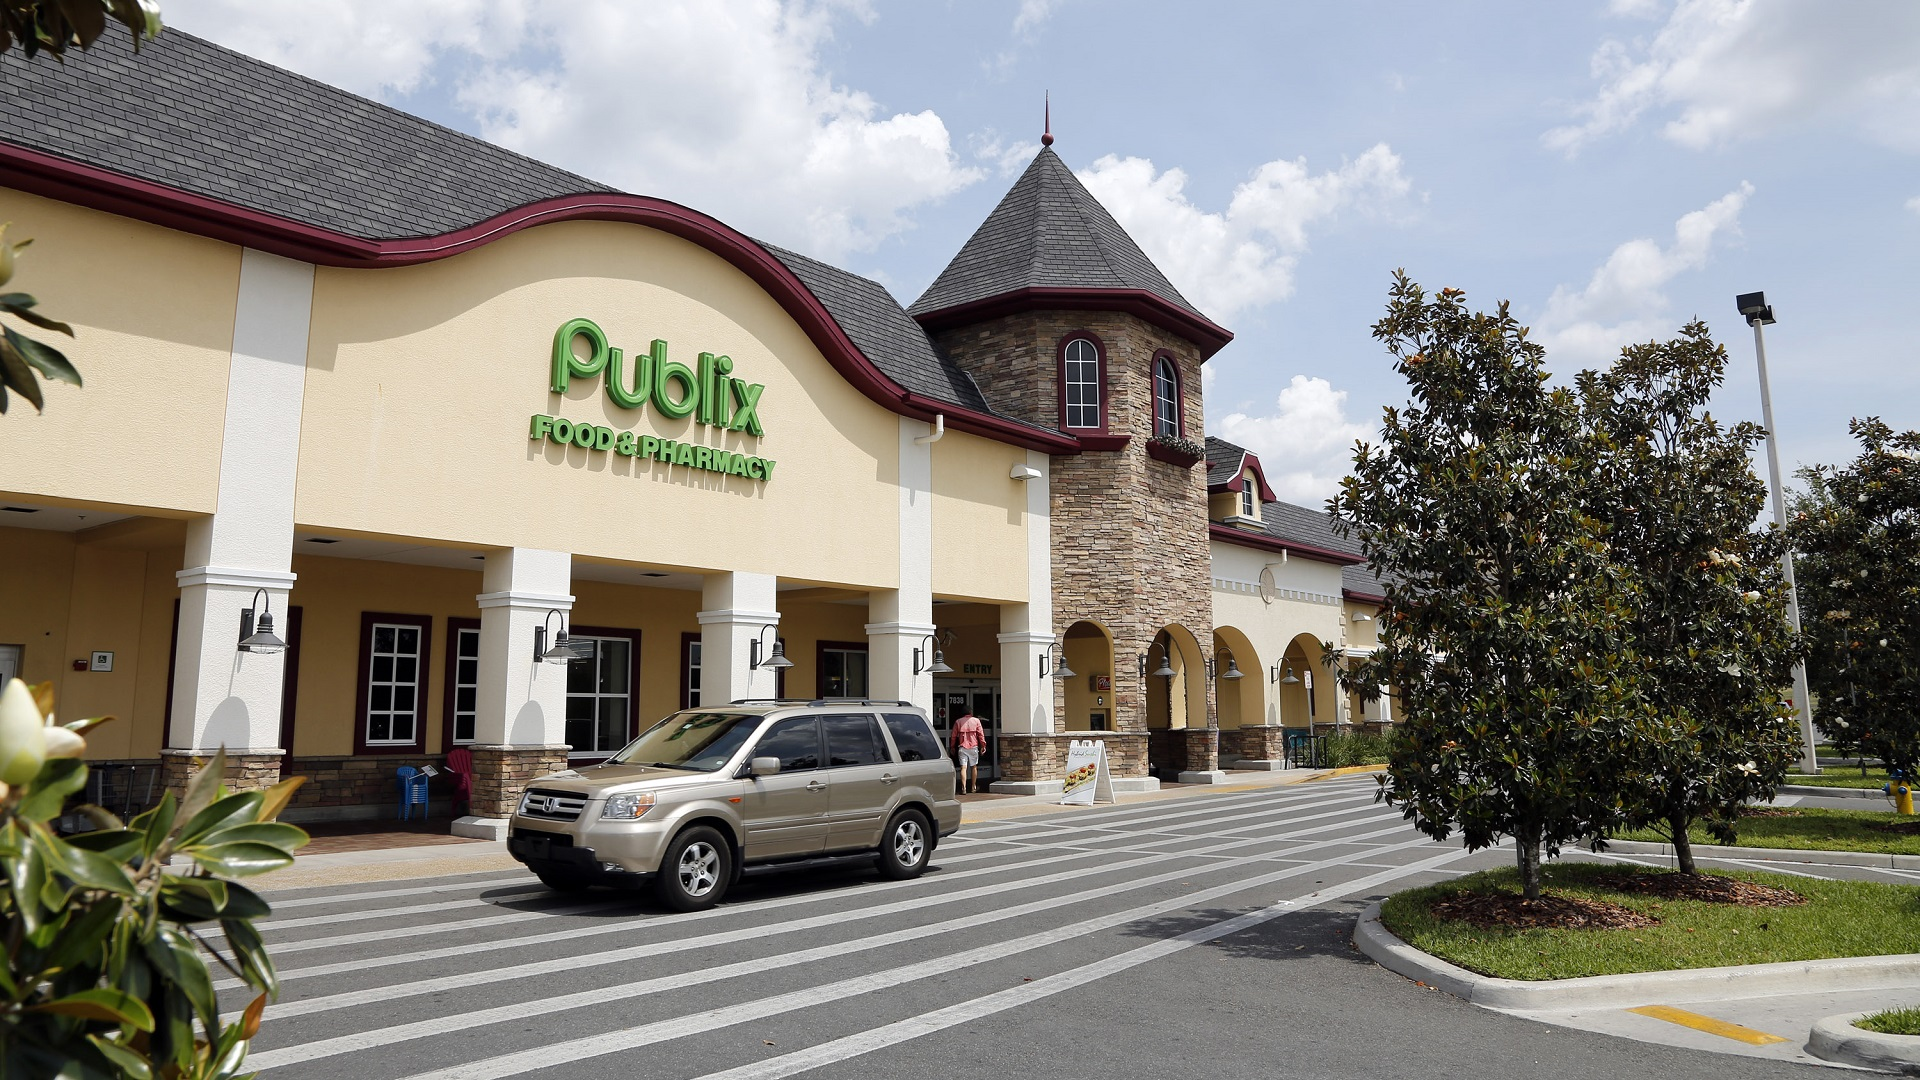 Publix Kroger And Home Depot Put Limits On Purchases Of Certain Products Due To Coronavirus Concerns 8news